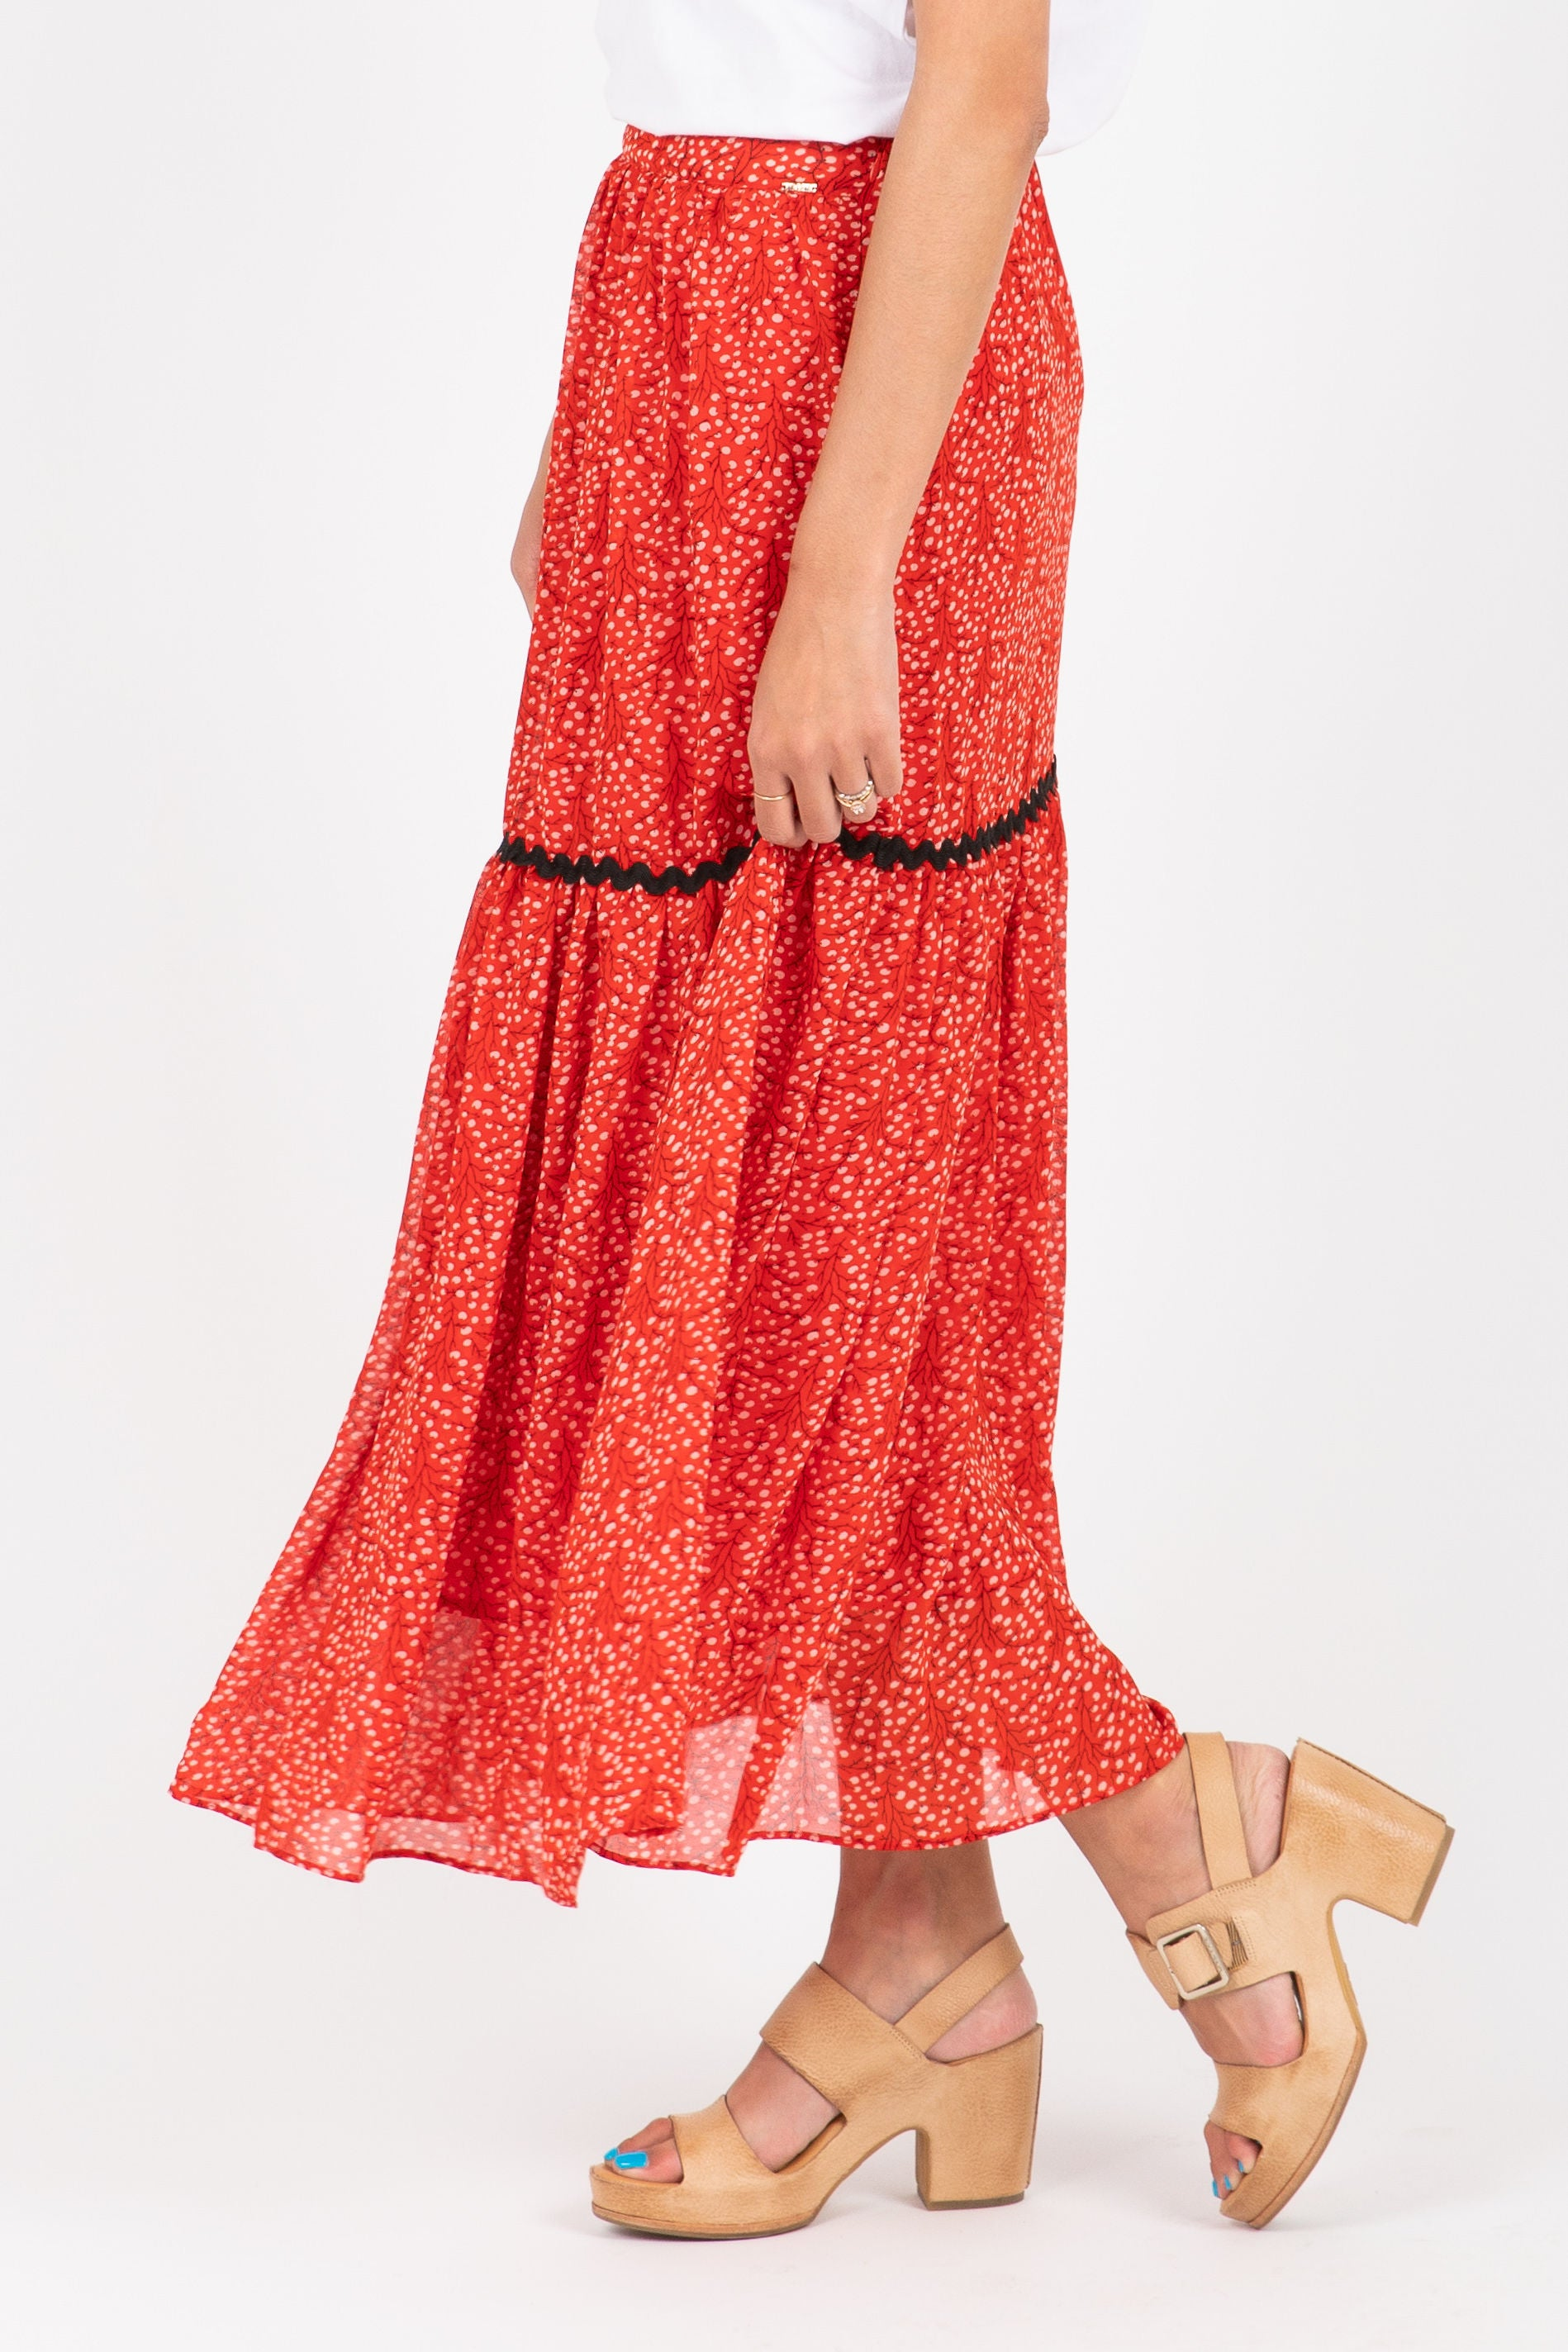 The Jest Dot Pleated Midi Skirt in Red